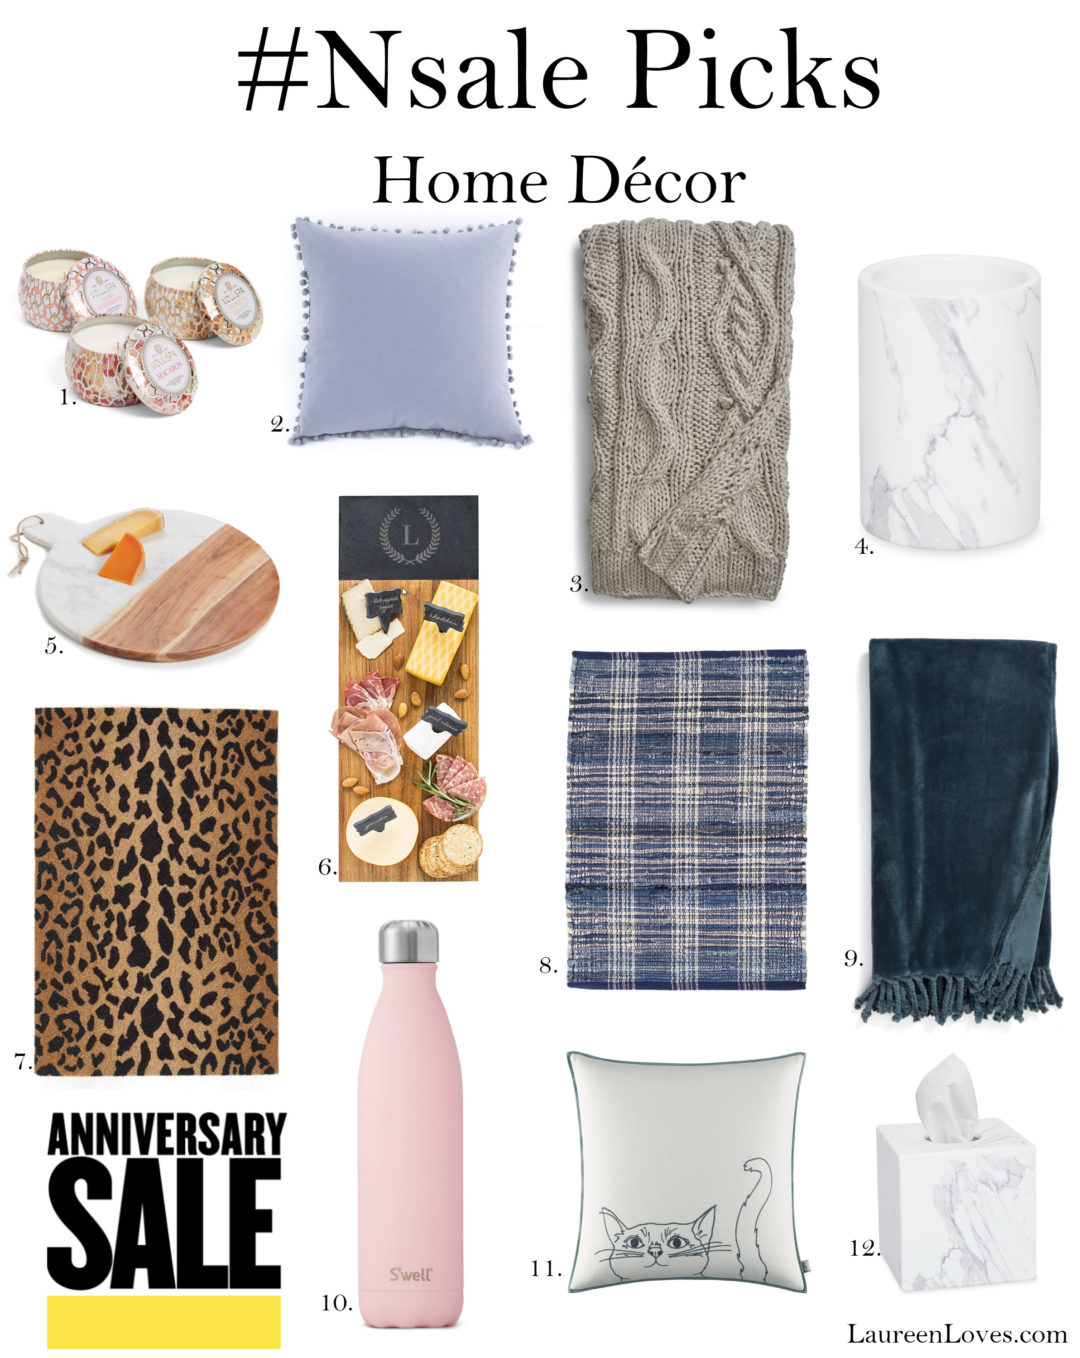 Home Accessories, #nsale, Nordstrom Anniversary Sale Home Decor